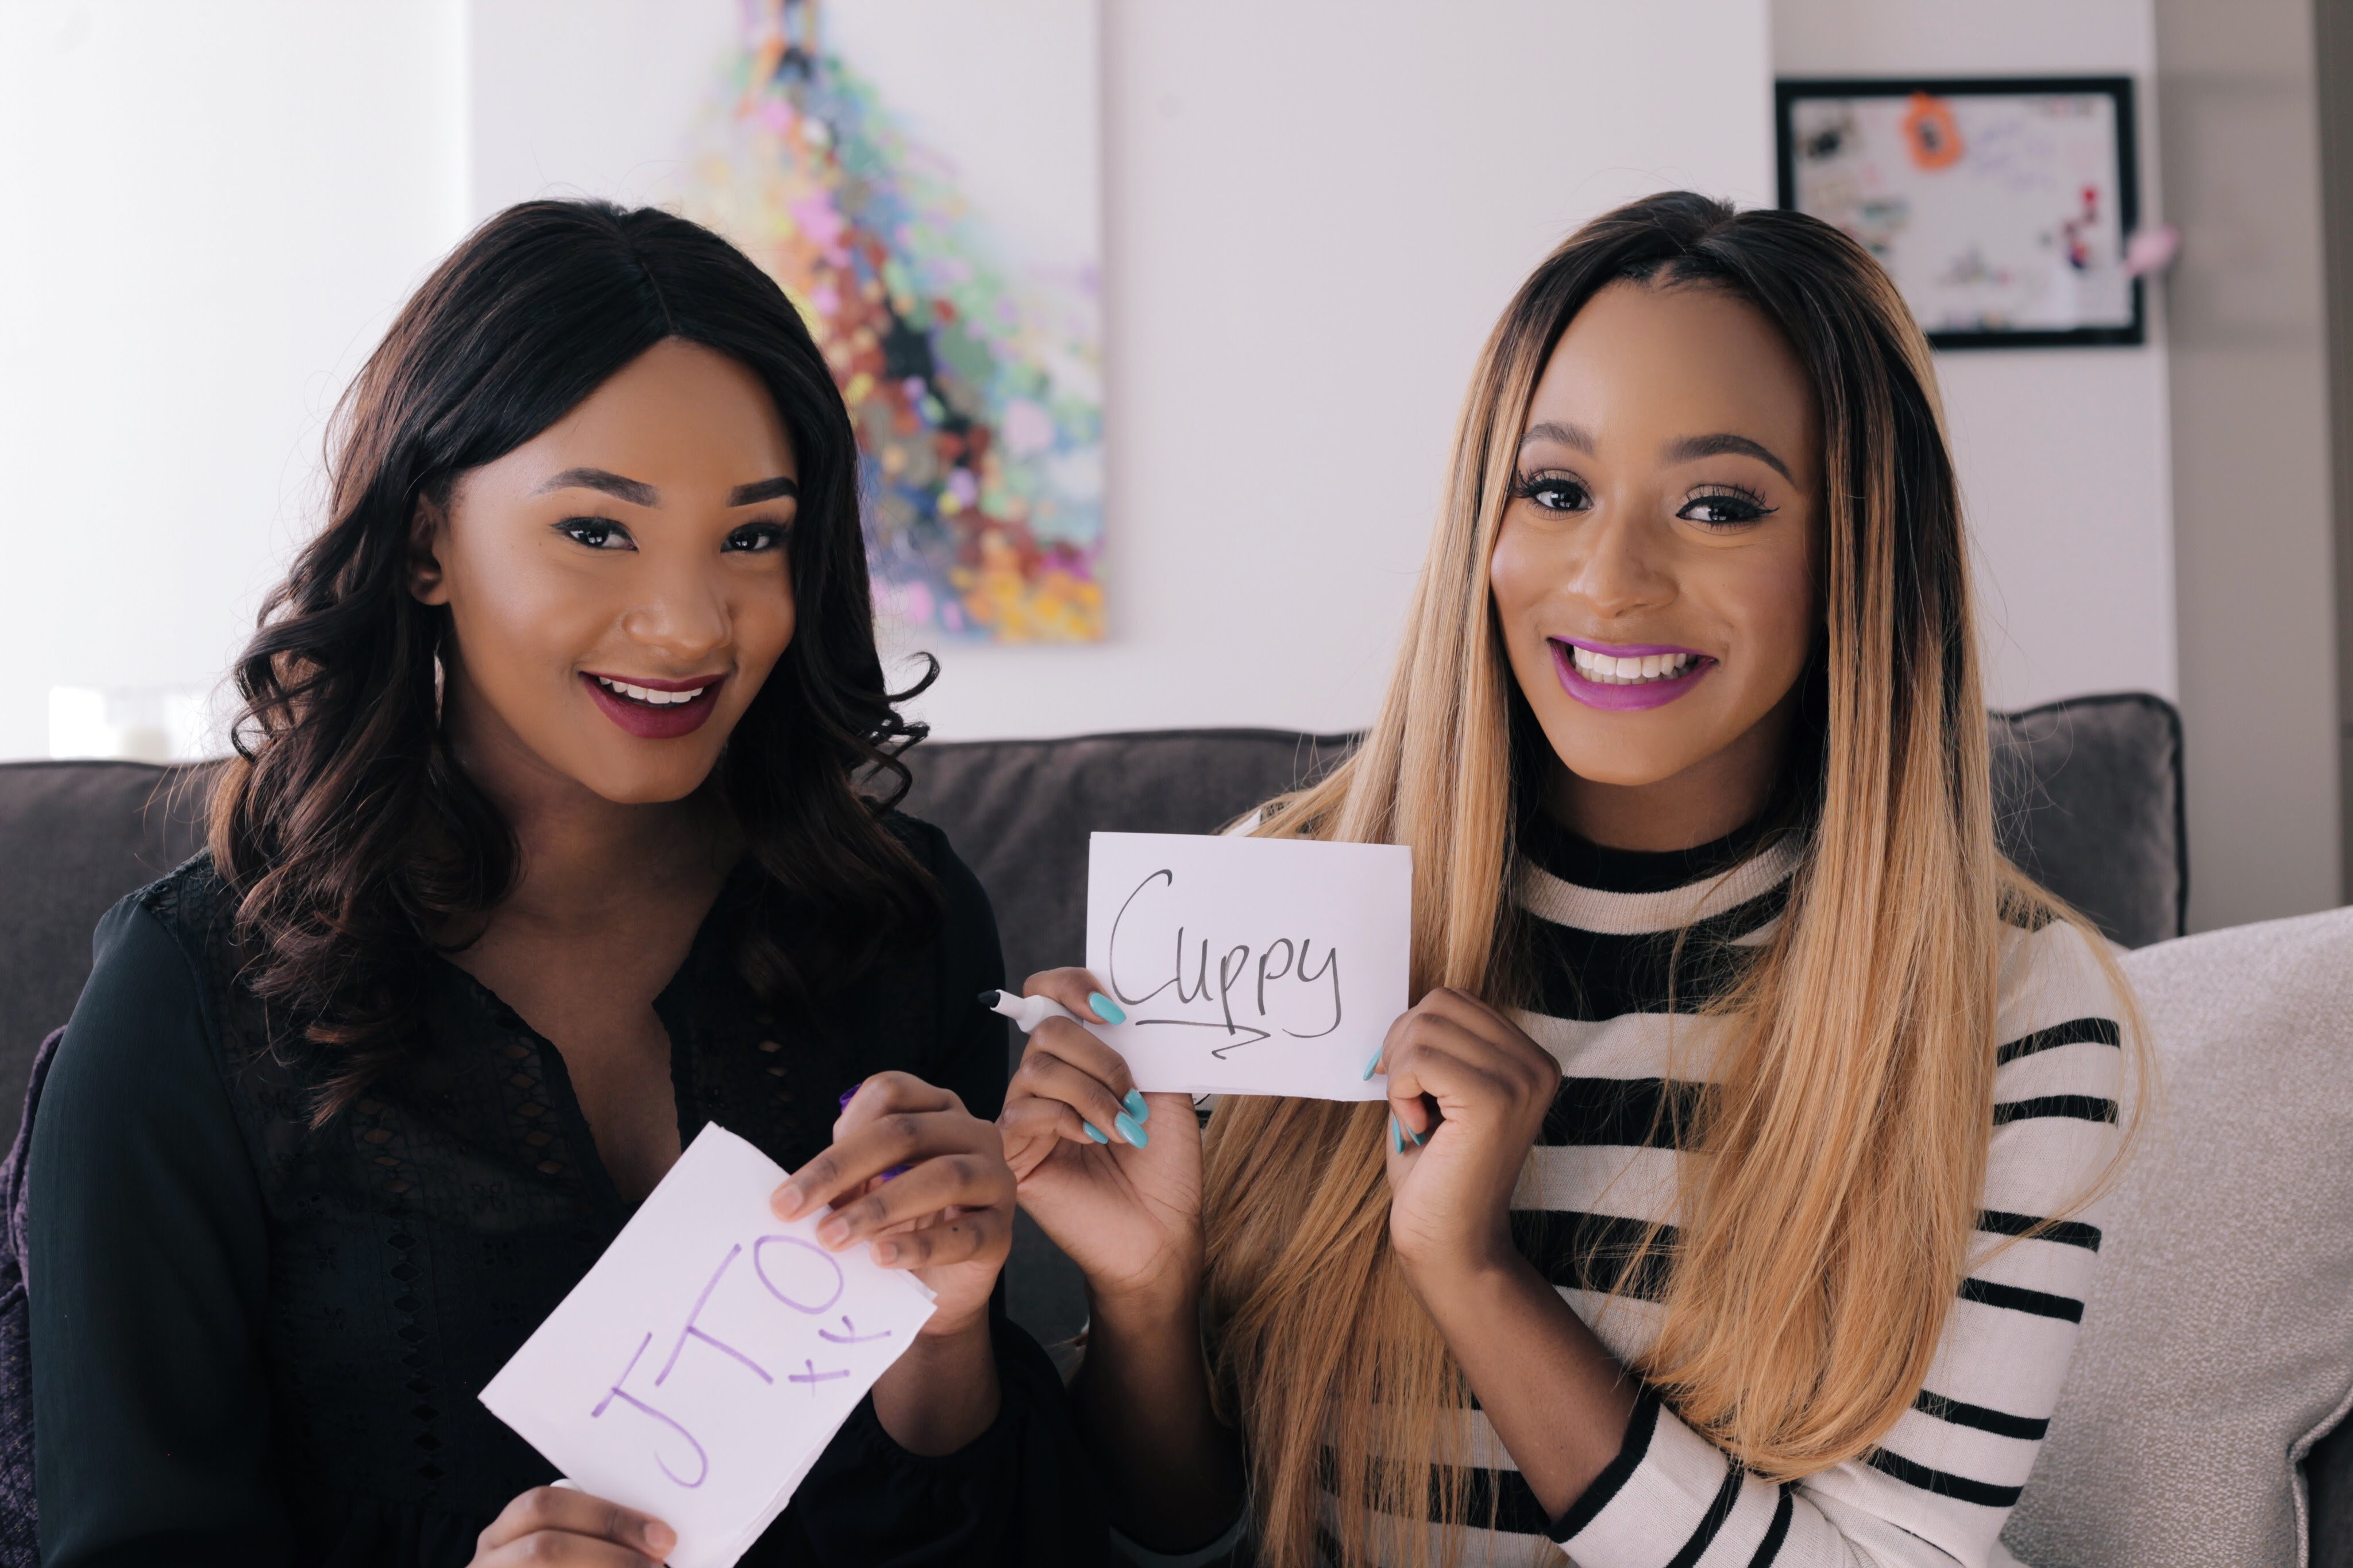 JTO X Cuppy Episode 2: How Well Do You Know Your Sister?